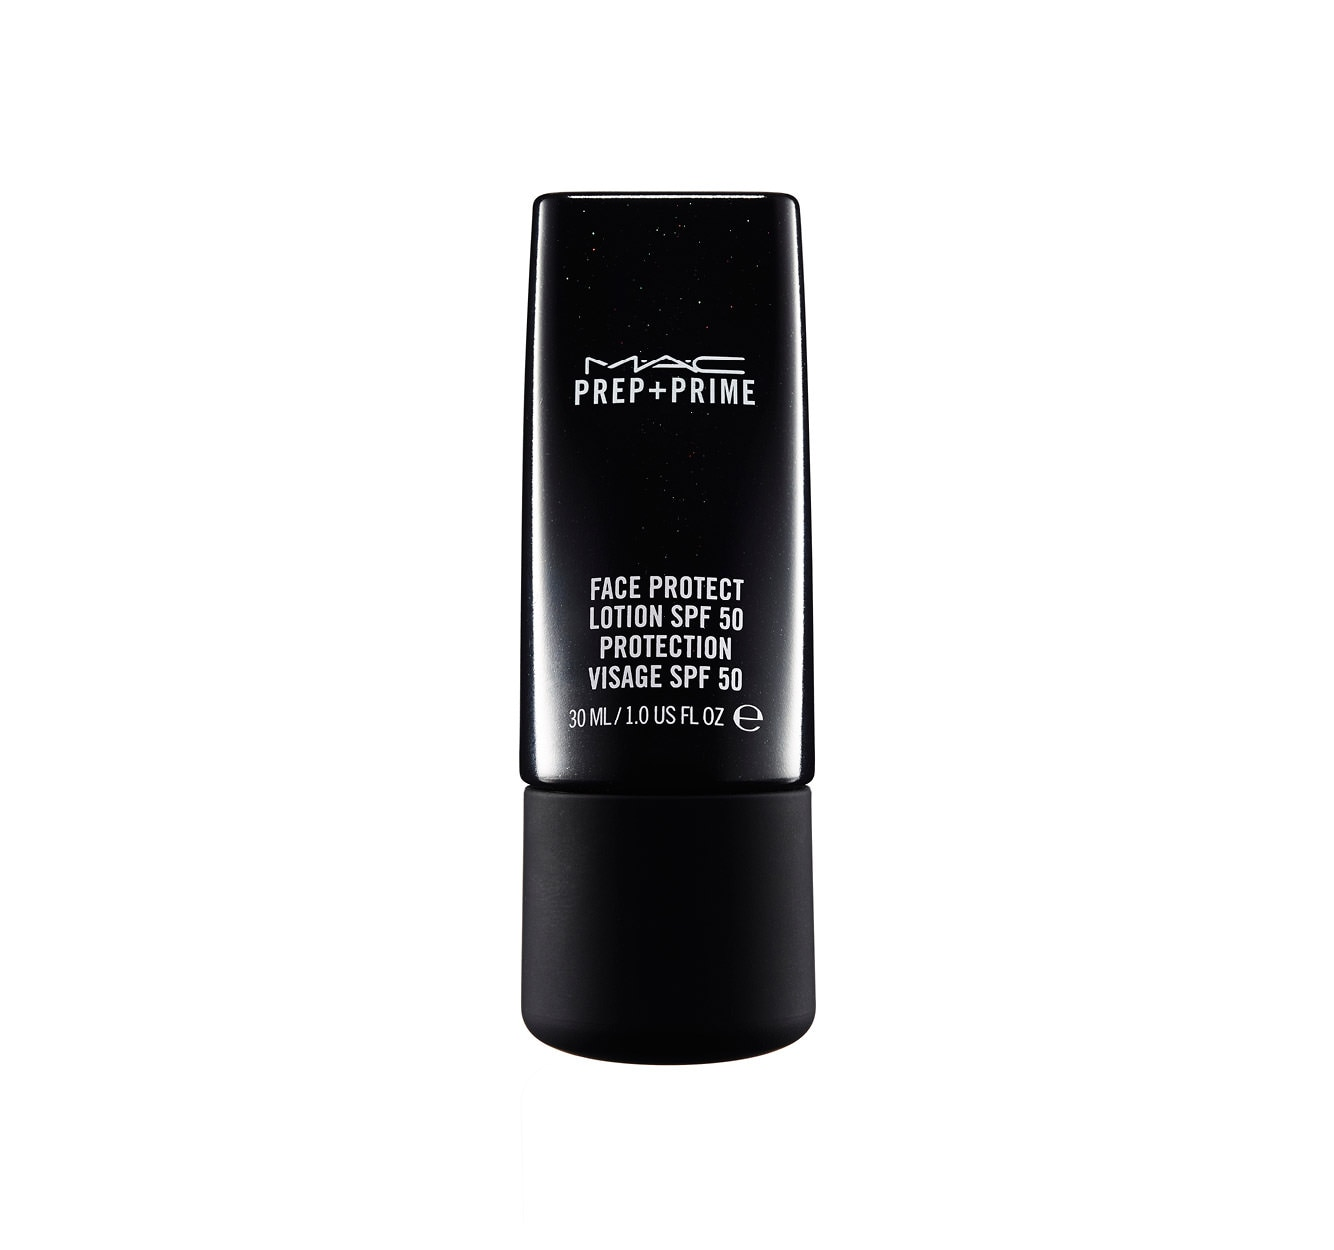 prep prime face protect lotion spf 50 mac cosmetics official site